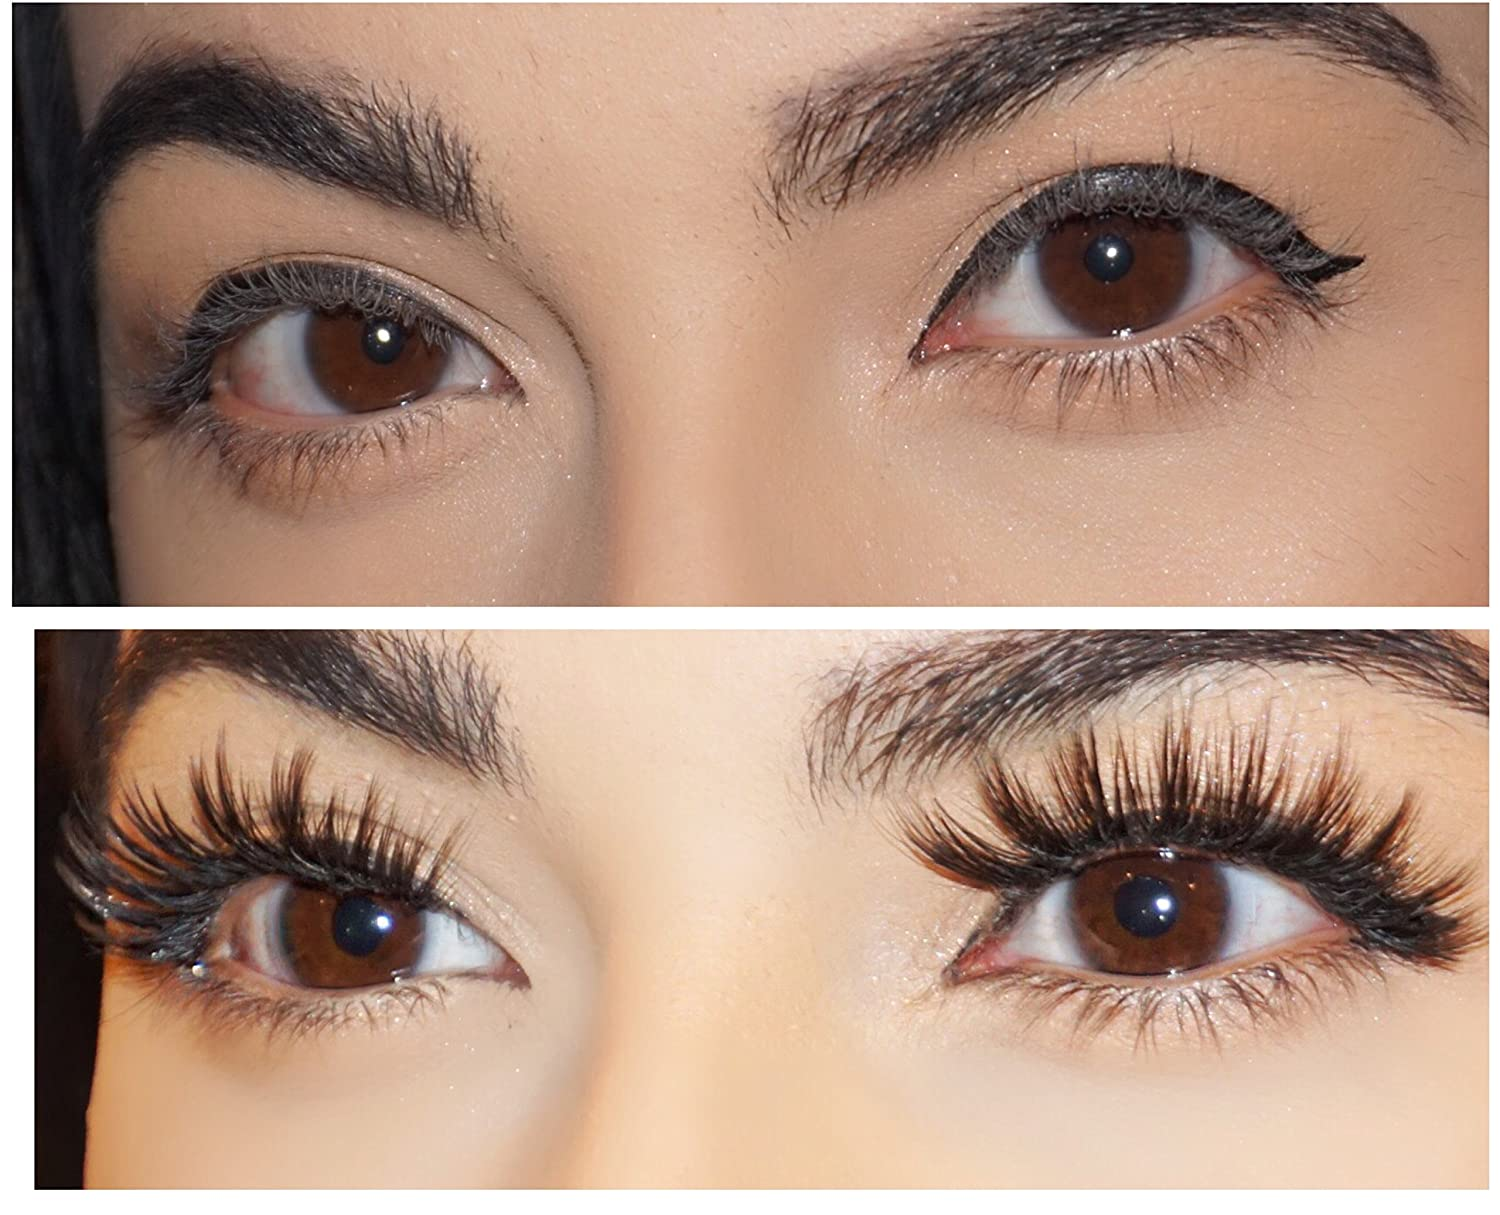 84ad2994384 Amazon.com : Mona Lashes | Gaia Lashes | False Eyelashes |Cruelty-Free |  Reusable | Handmade : Beauty